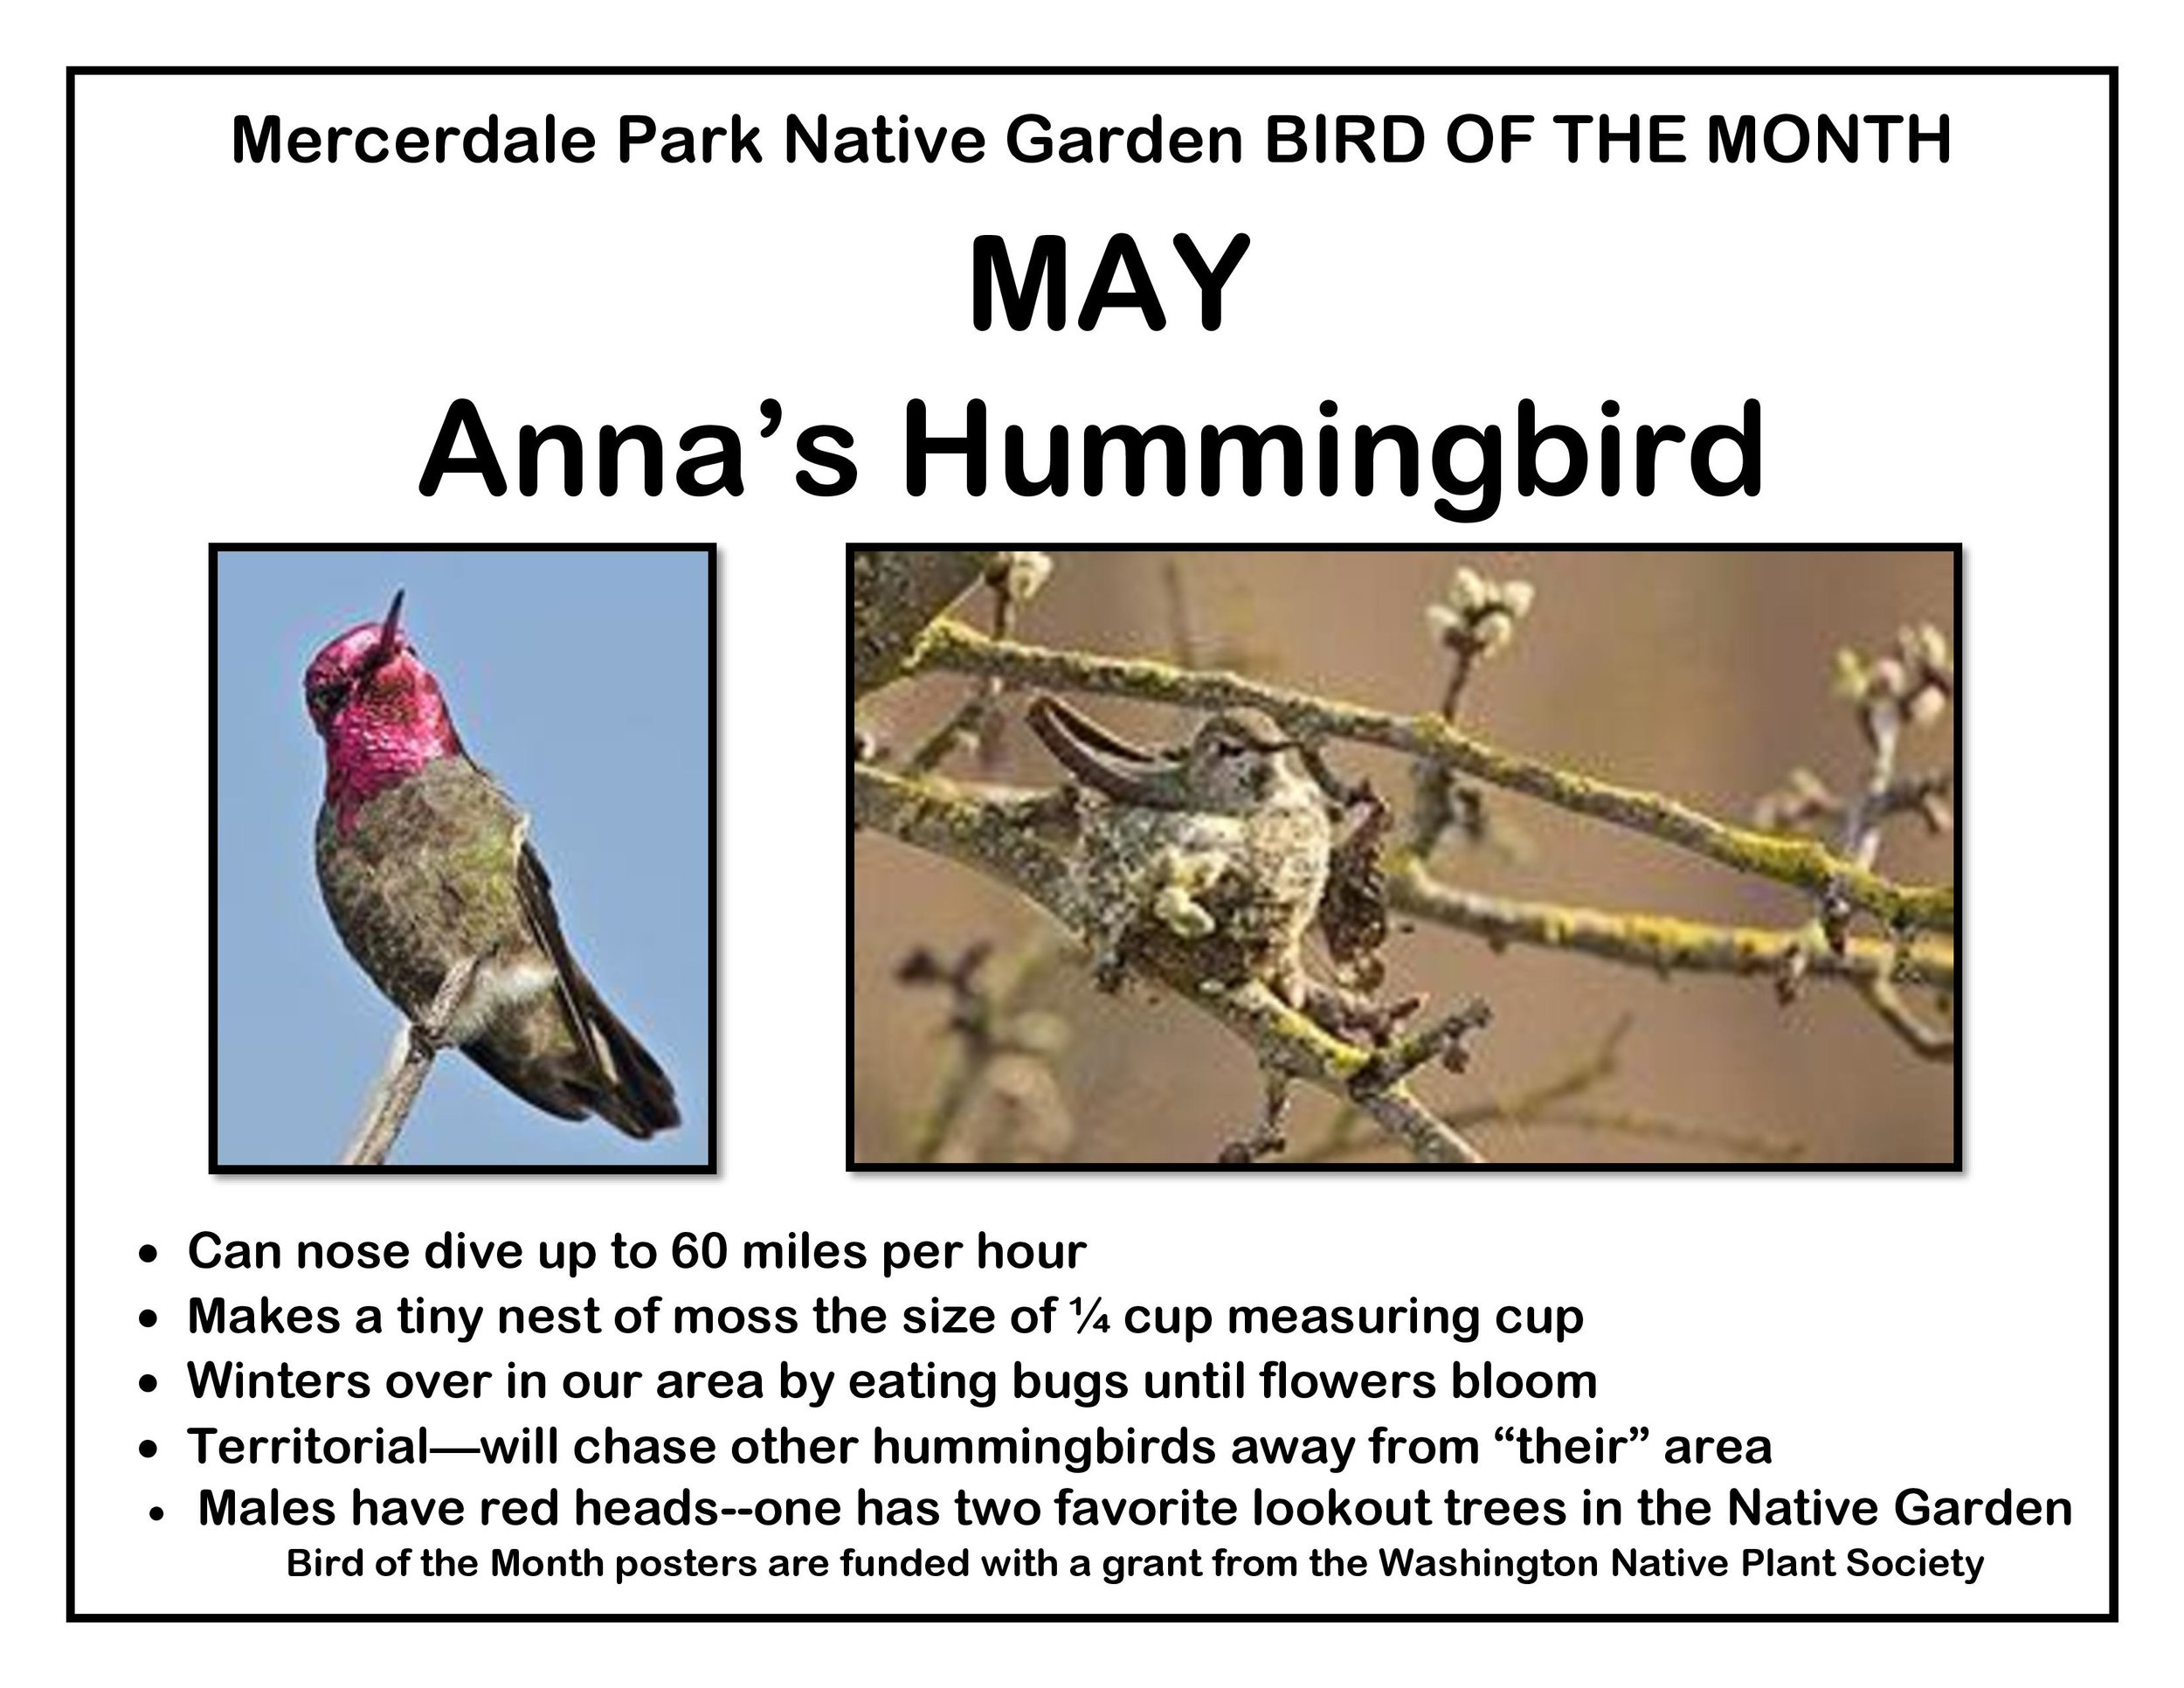 p BIRD OF THE MONTH 5 May Anna s 4 website-page-001.jpg